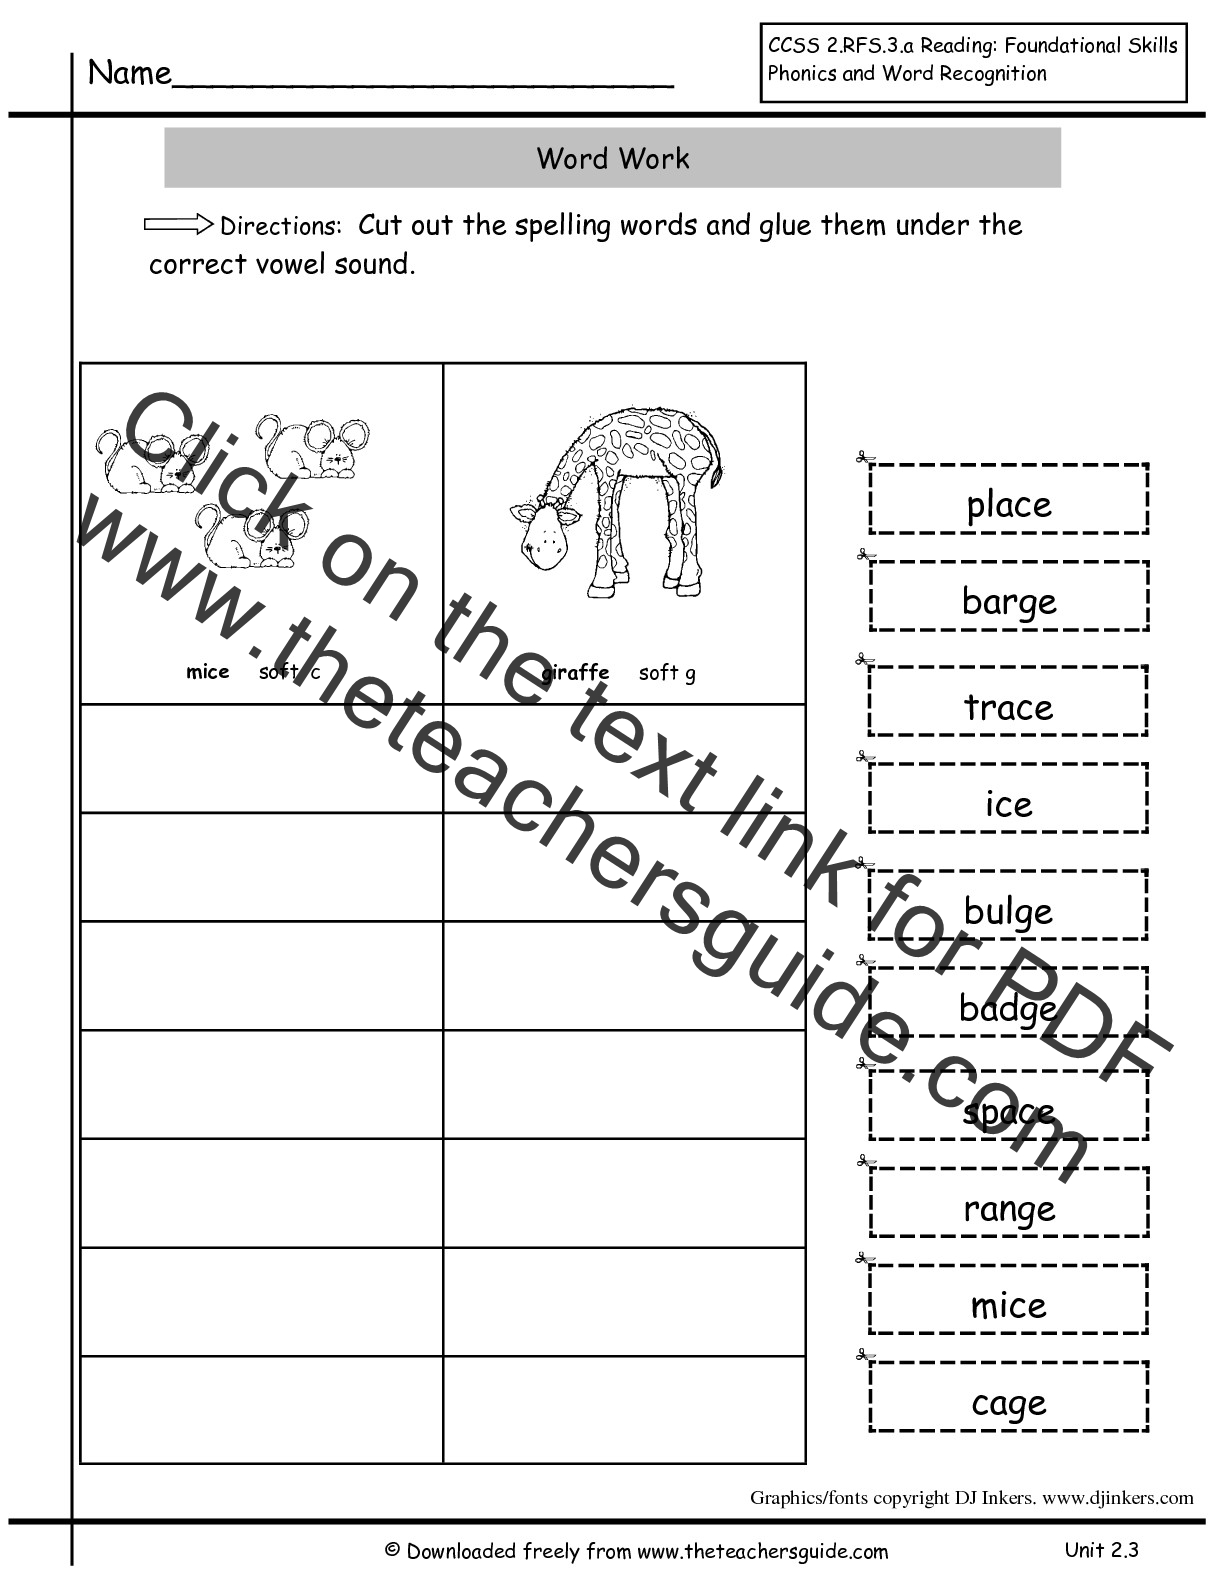 Revered image in grade 2 spelling words printable